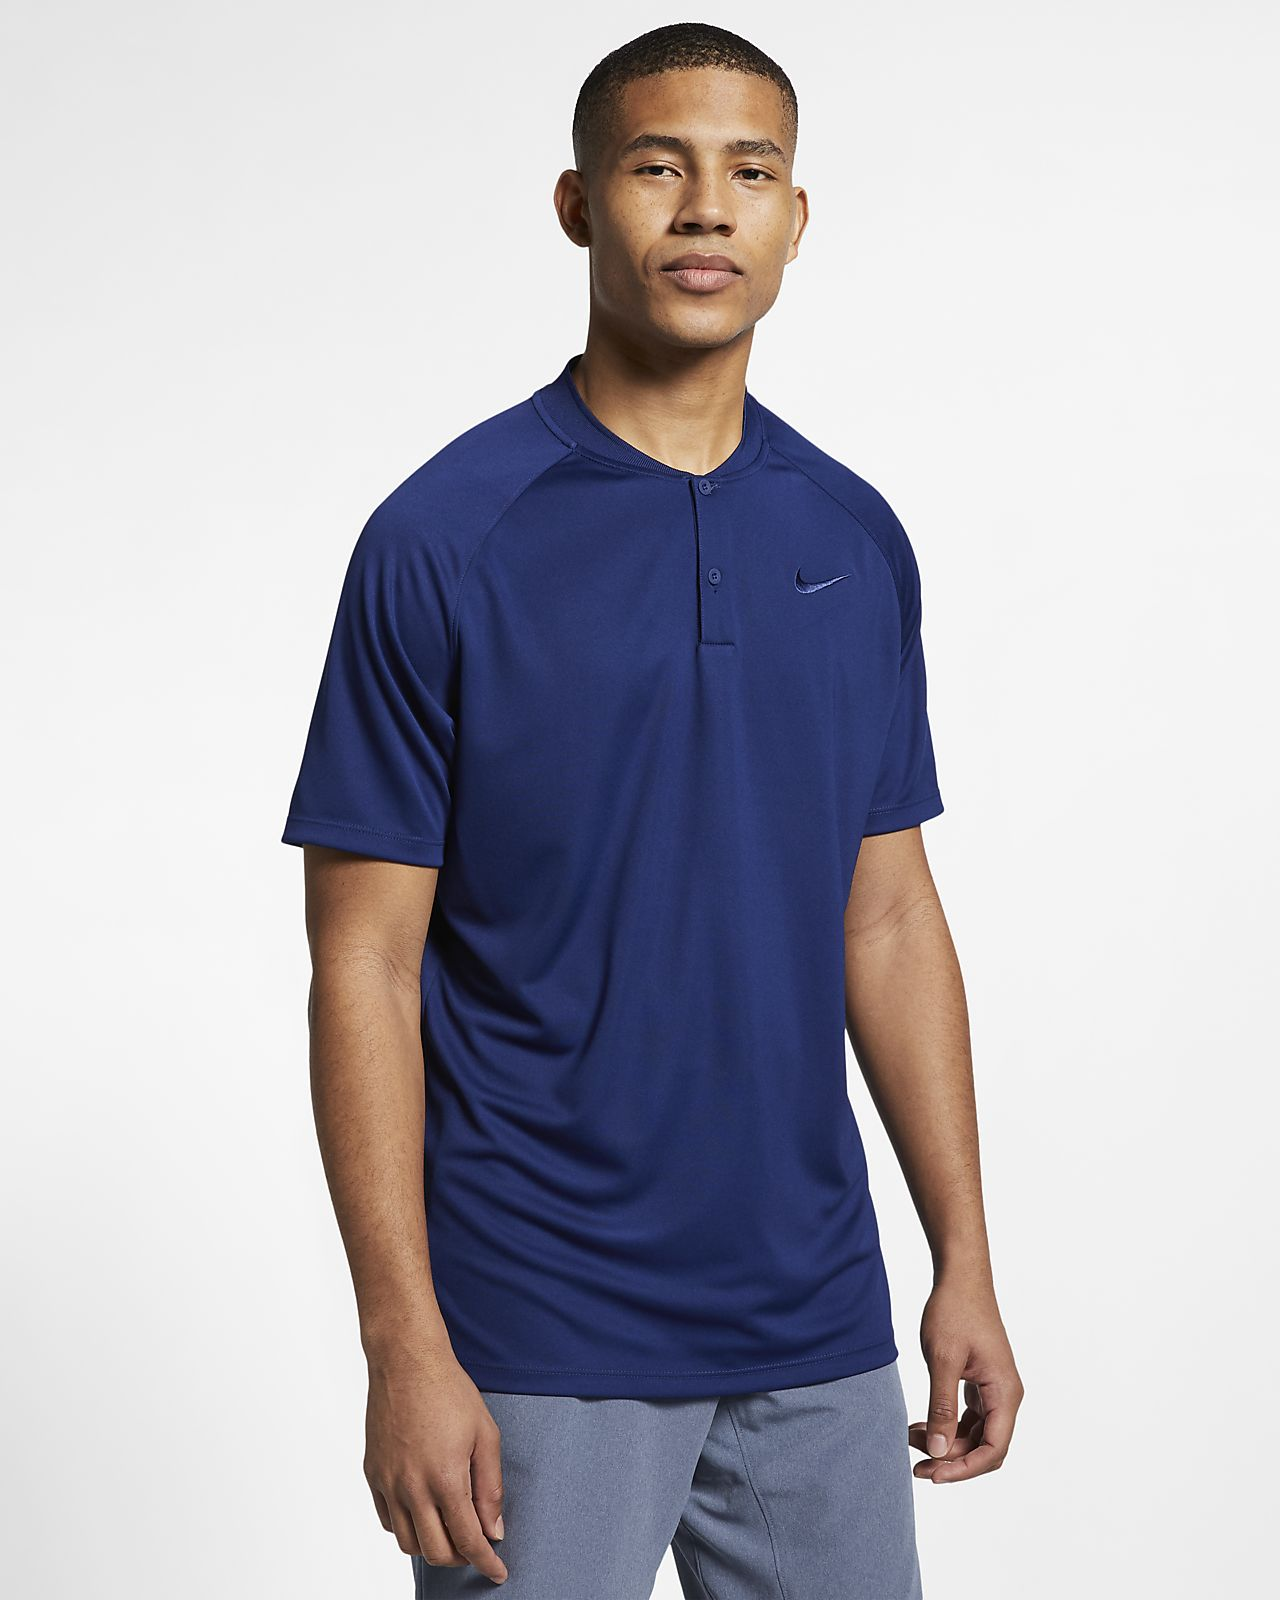 Nike Dri-FIT Momentum Men s Standard Fit Golf Polo. Nike.com 3d5670324